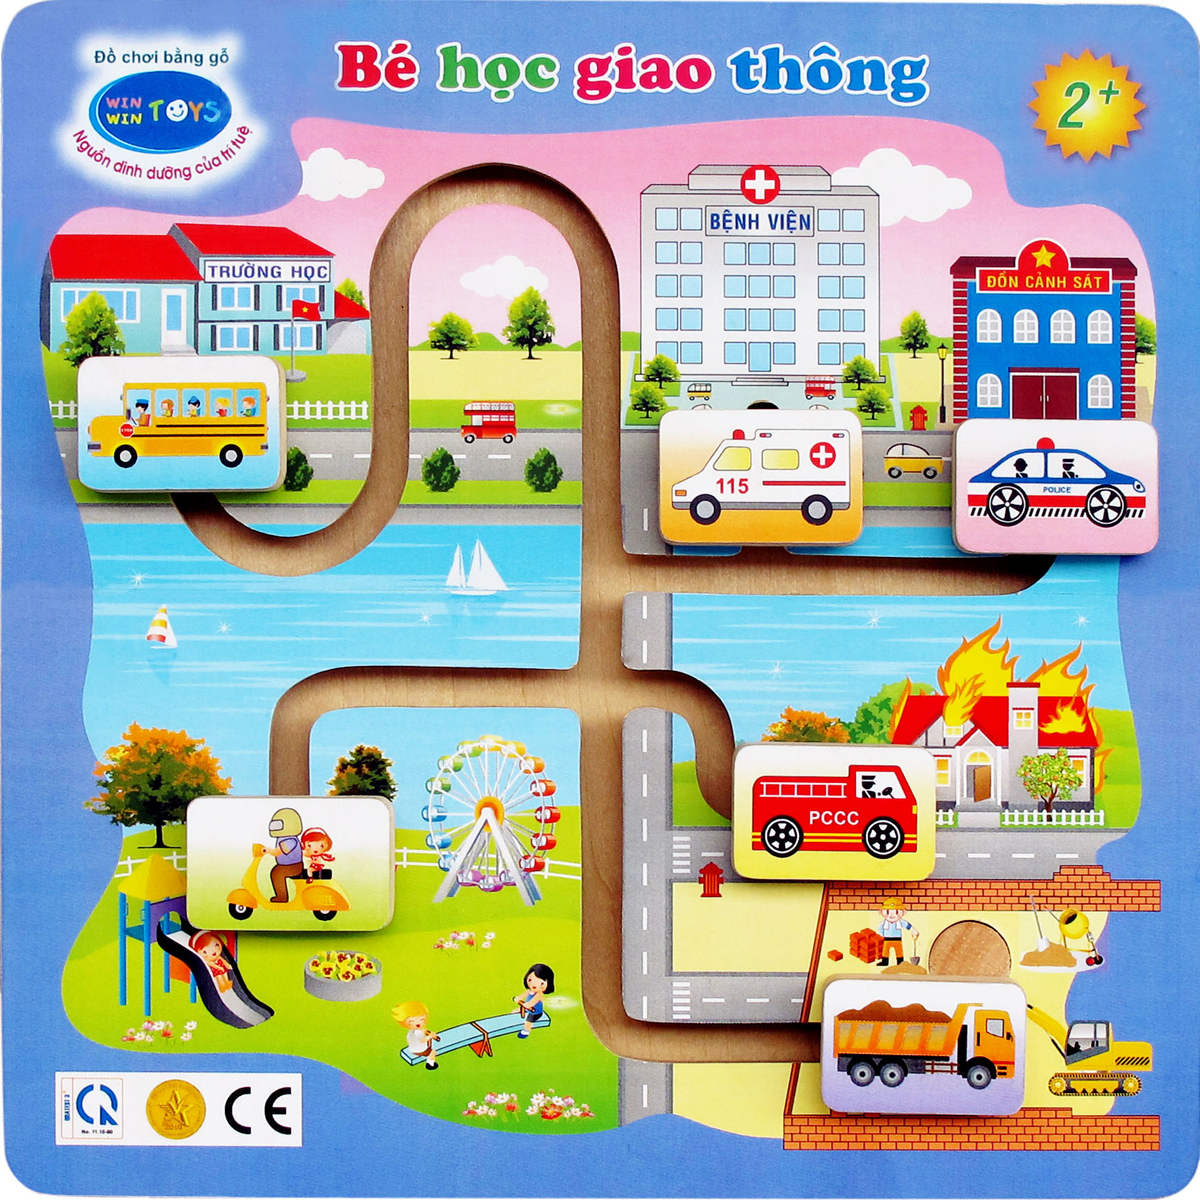 Do choi go Winwintoys 69292 - Be hoc giao thong